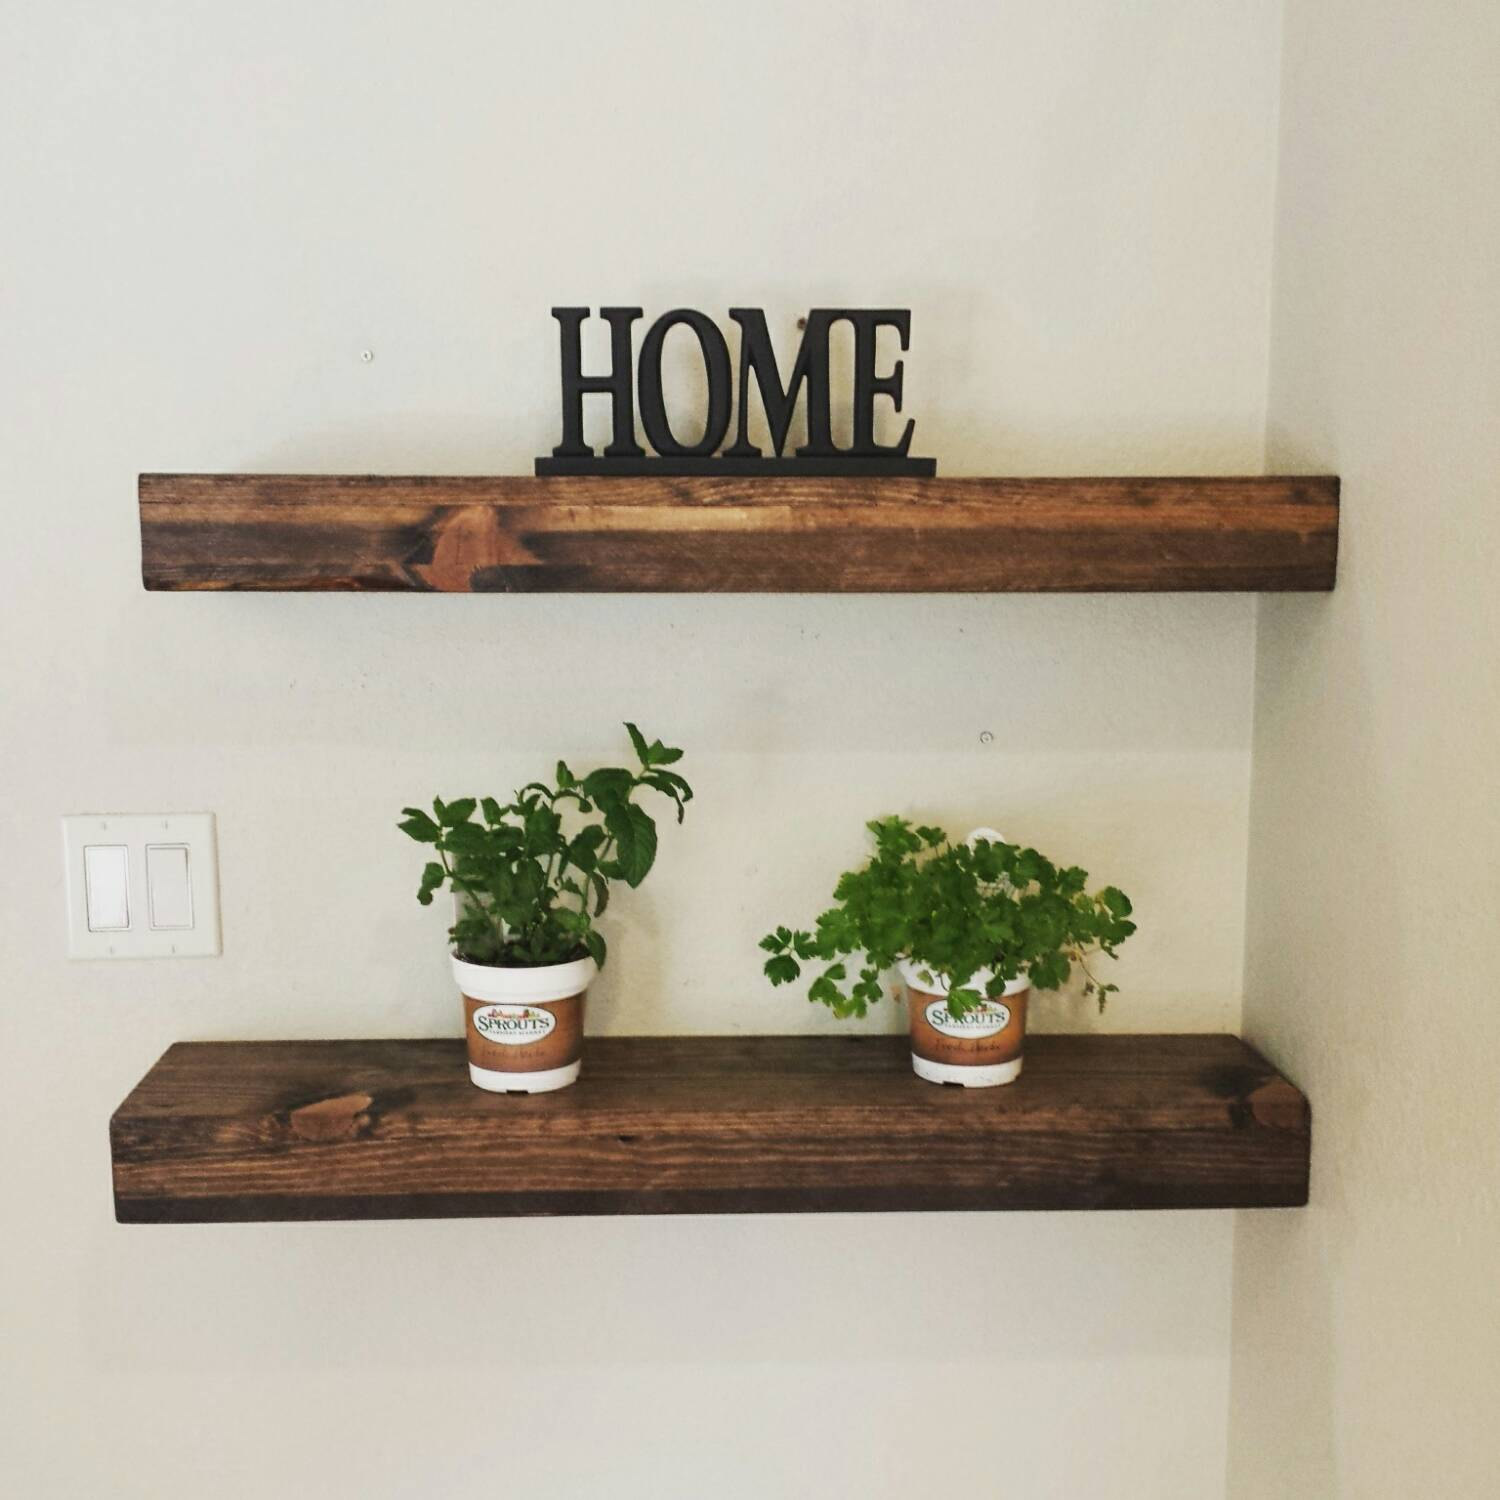 handmade rustic and reclaimed wood floating shelves mantel etsy fullxfull black walnut bathroom storage units audio component wall mount living room corner ideas ture book shelf